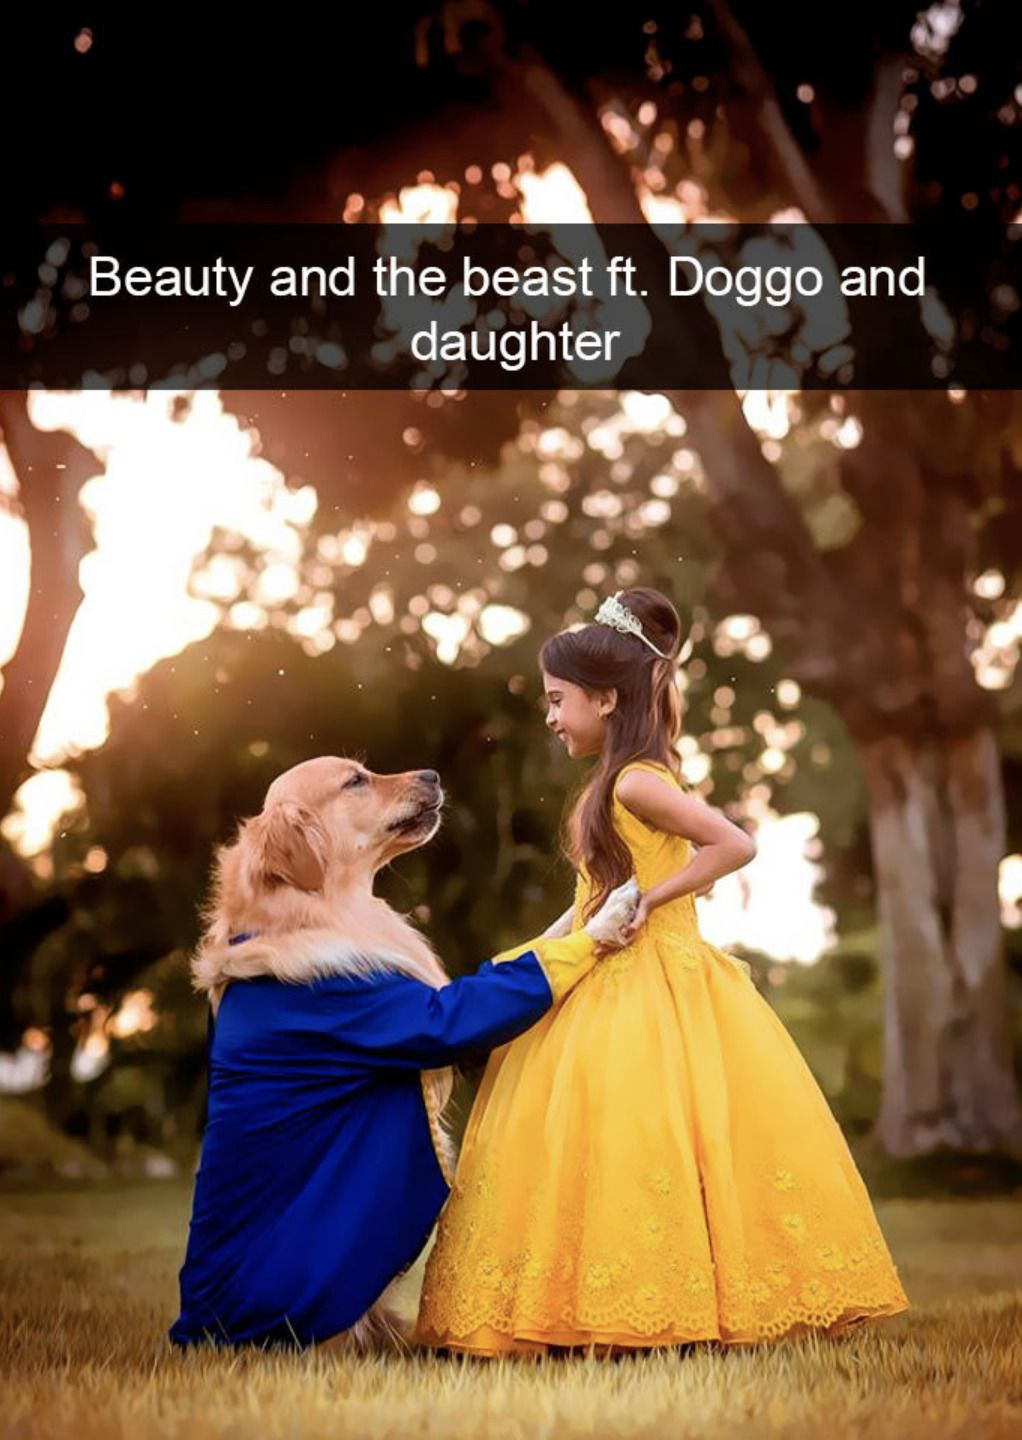 Beauty and the beast ft. Doggo and daughter.